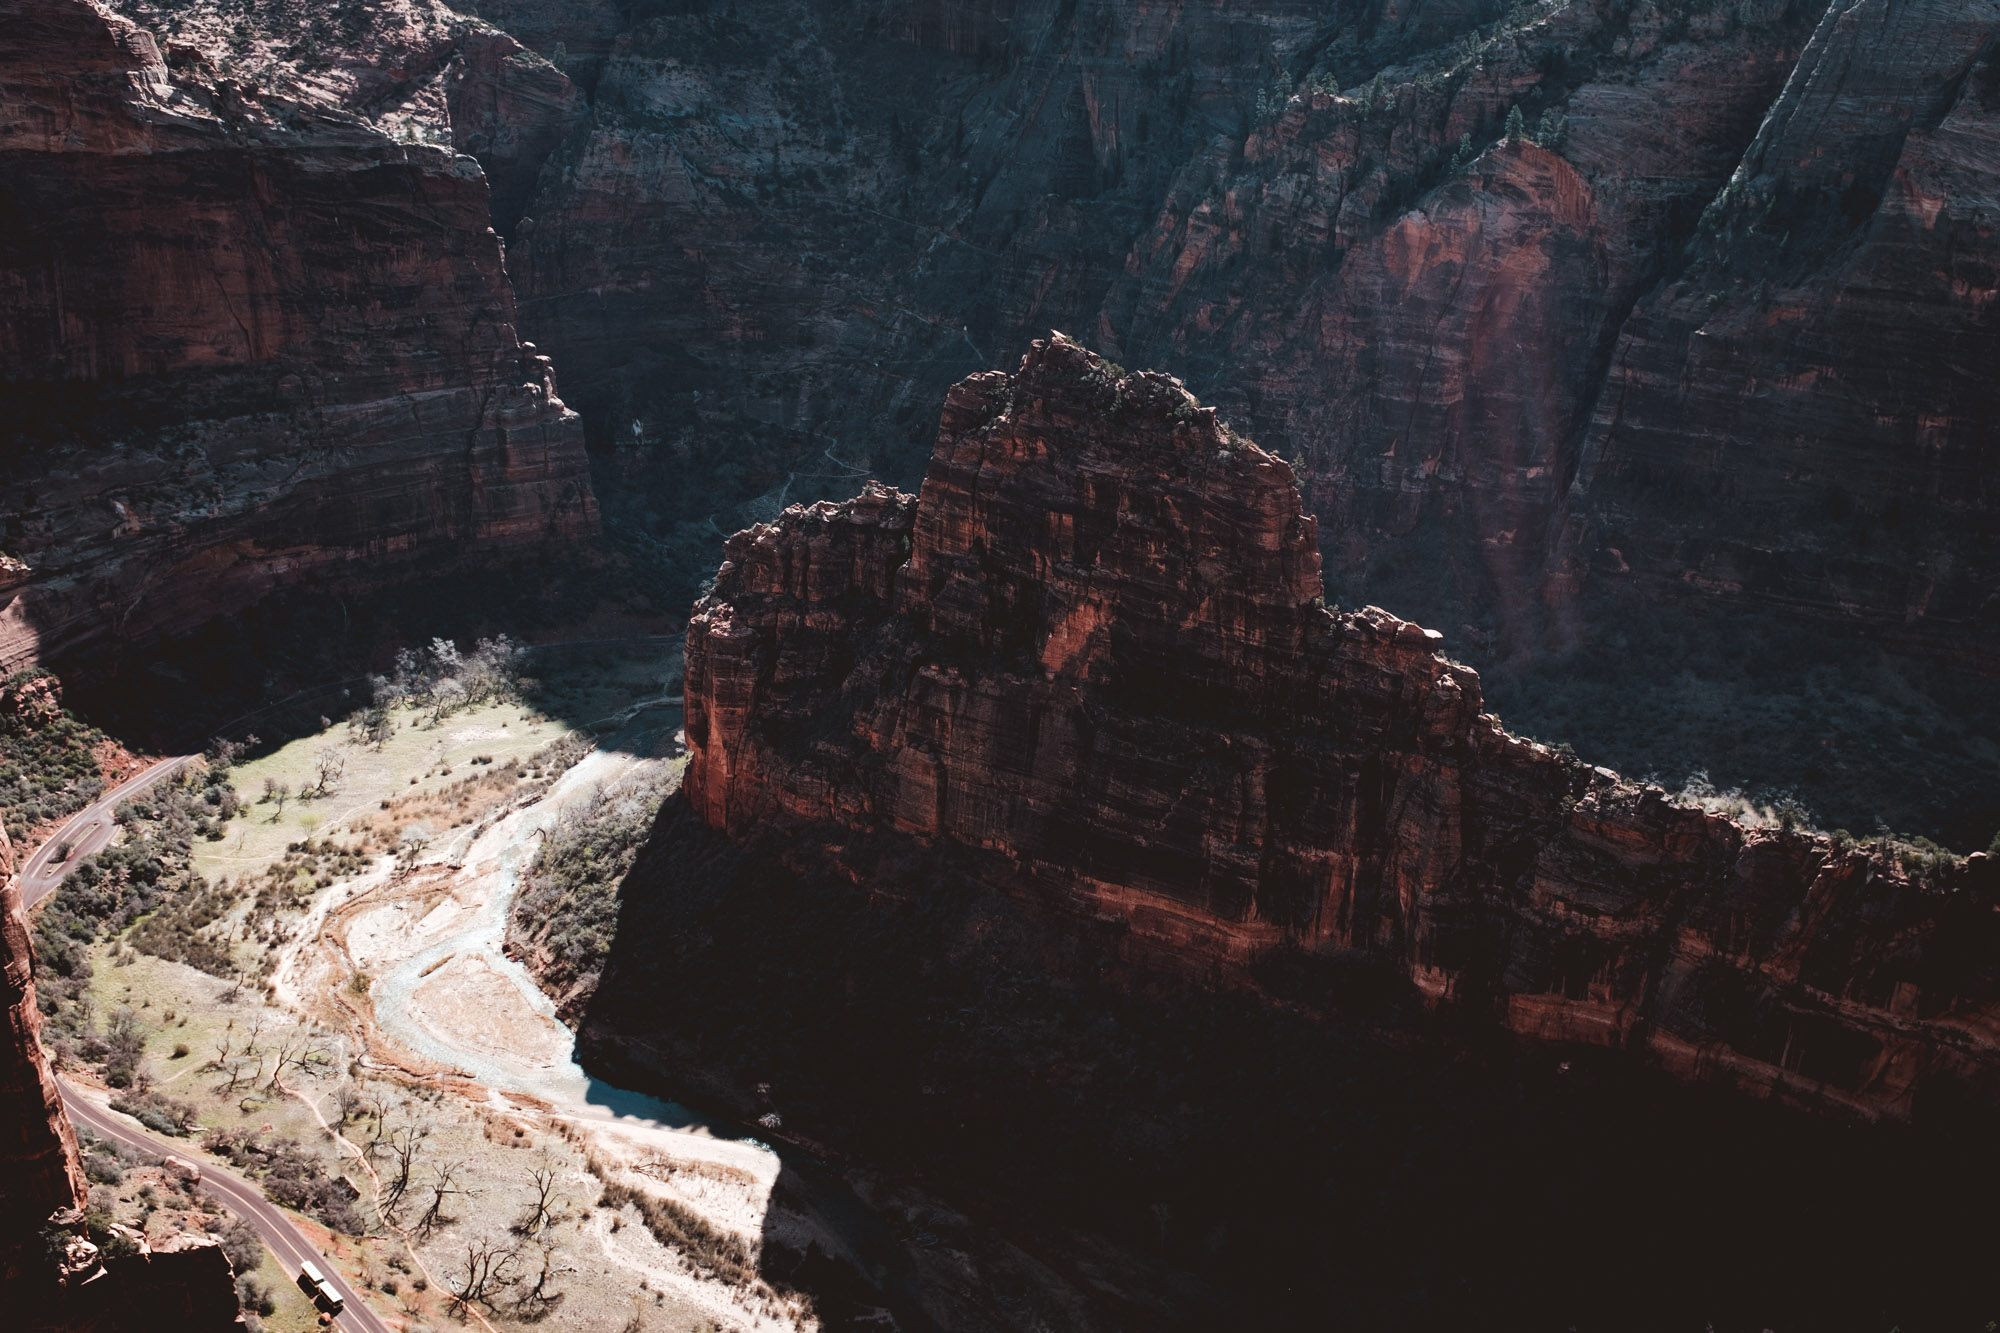 bus-angels-landing-zion-national-park-utah